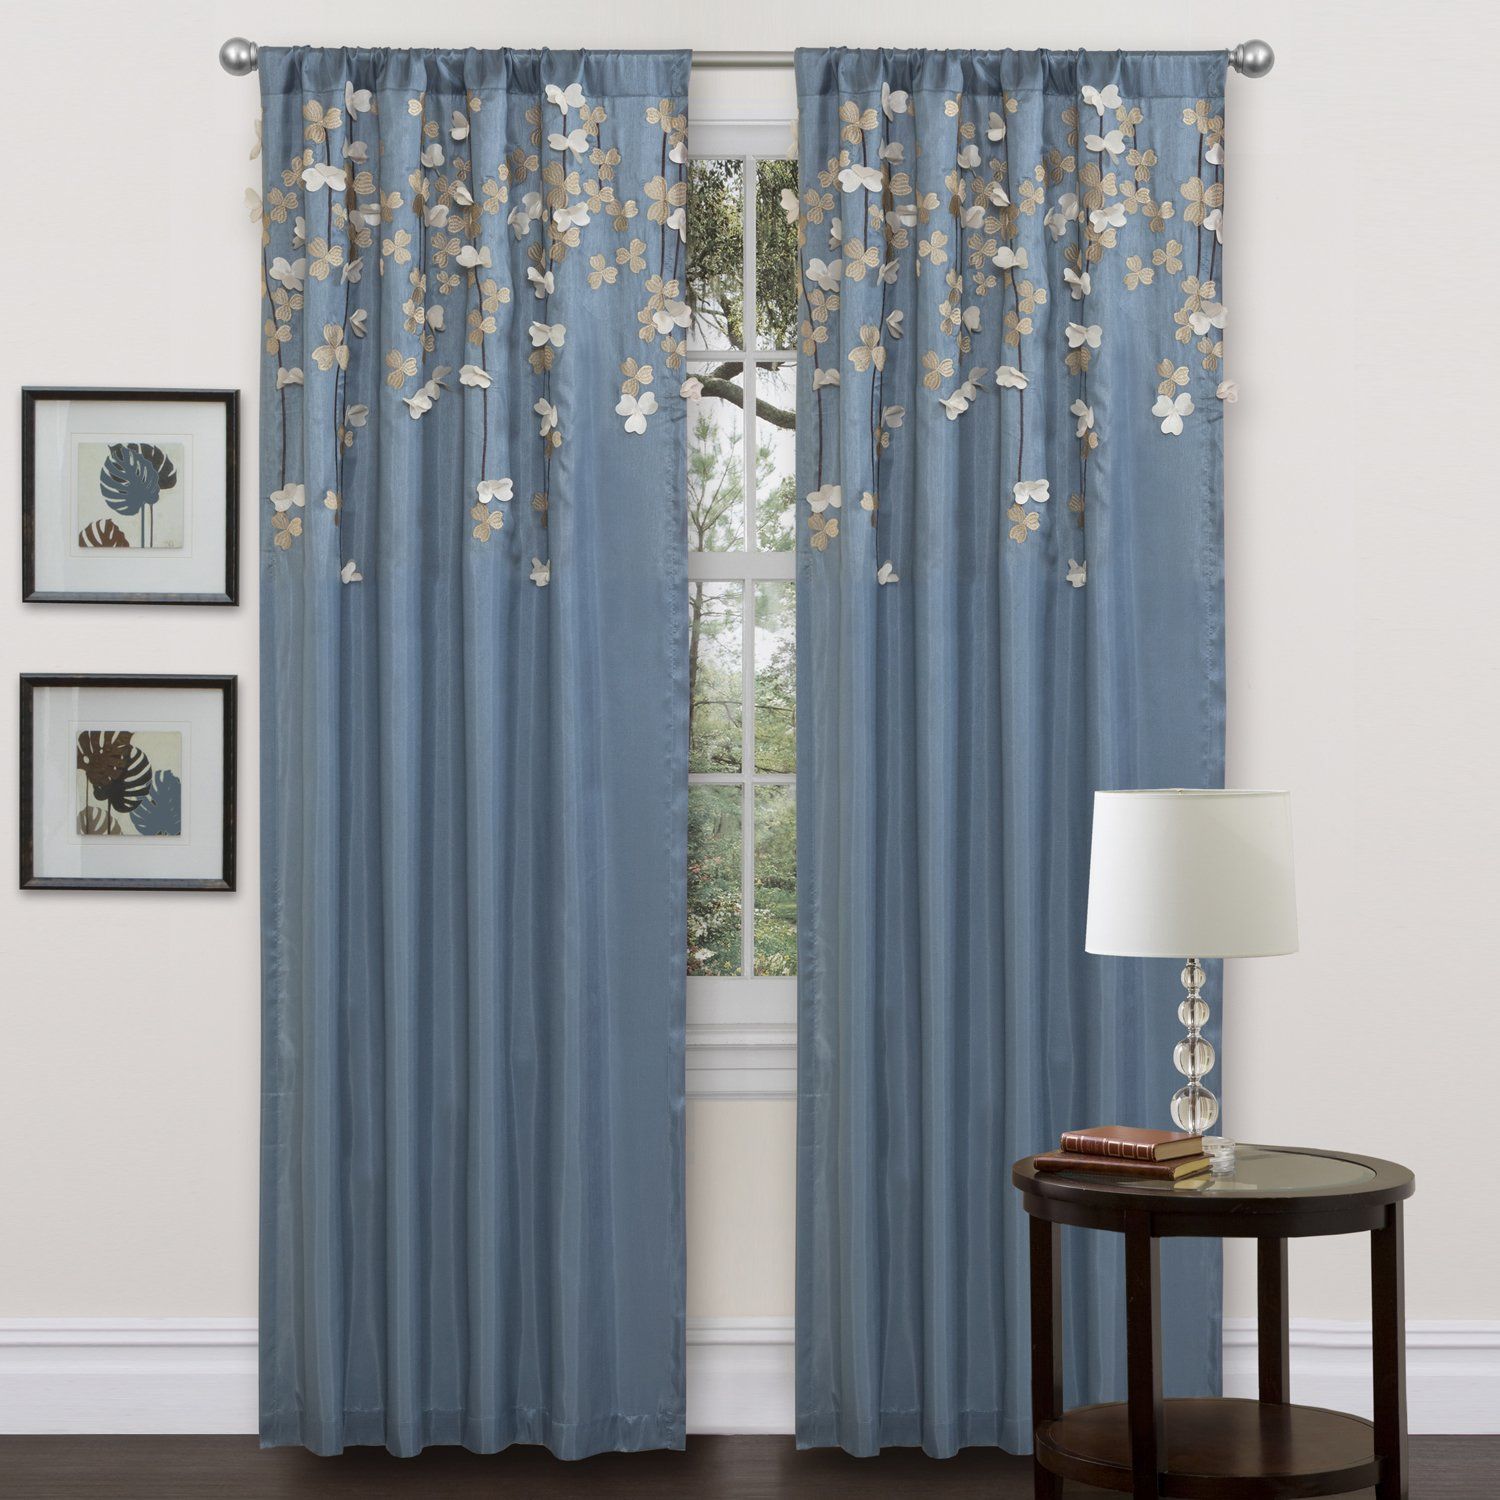 Lush Decor Flower Drop Curtain Panel, Blue